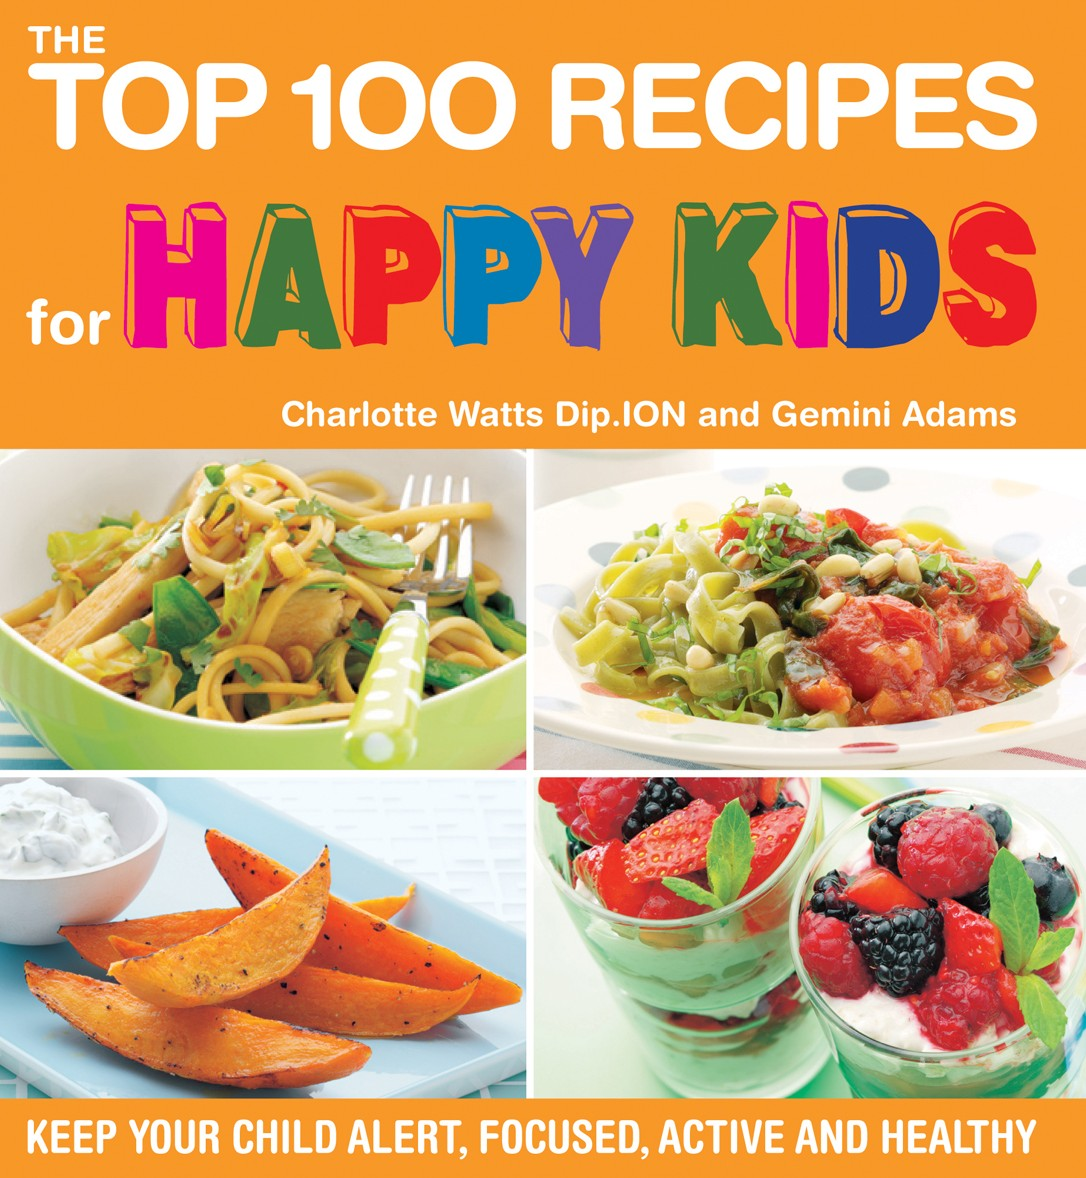 The Top 100 Recipes For A Healthy Lunchbox Lunch Ideas Nourish inside healthy recipes for children for your reference